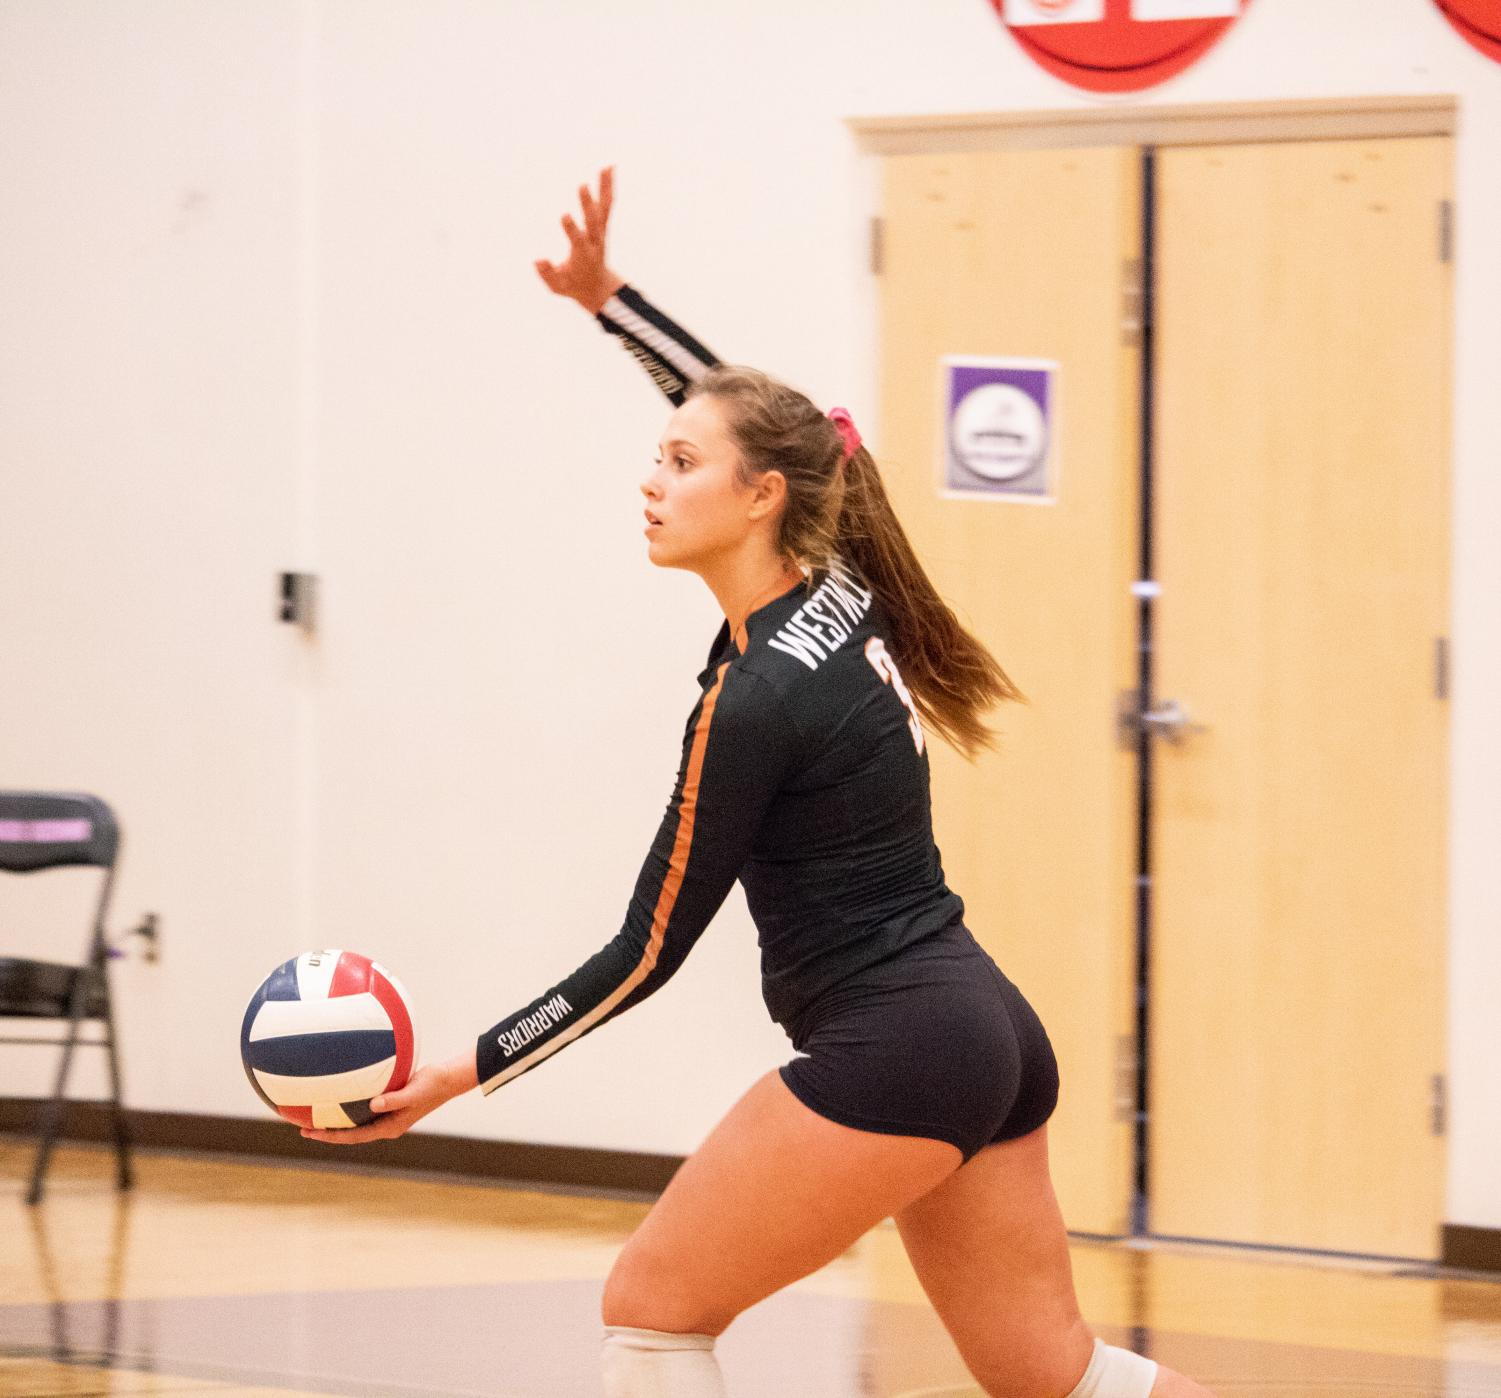 Holding+the+ball%2C+Abby+Gregorczyk+%2721+prepares+to+throw+the+ball+in+the+air+for+a+serve.+This+play+ended+with+the+Warriors+winning+the+point.